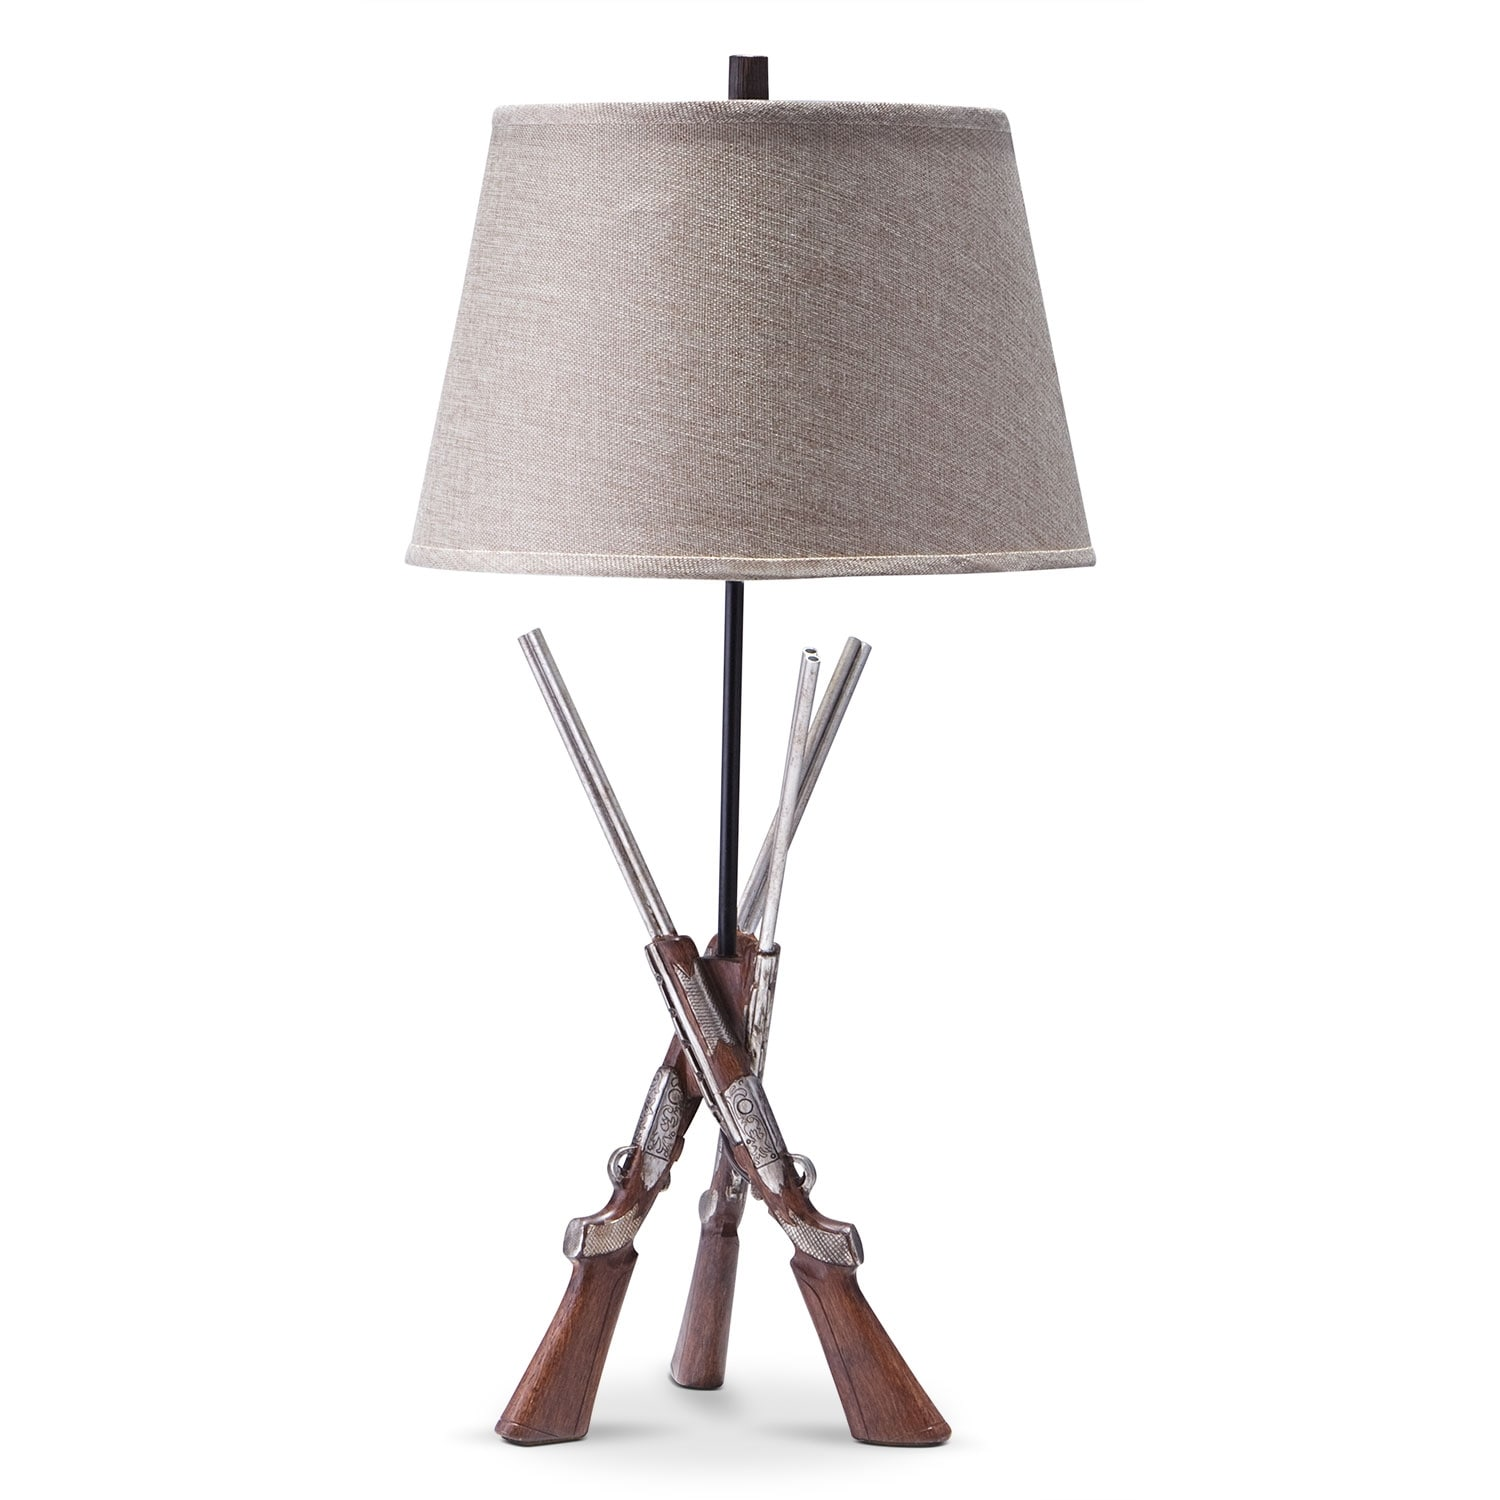 Home Accessories - Shotguns Table Lamp